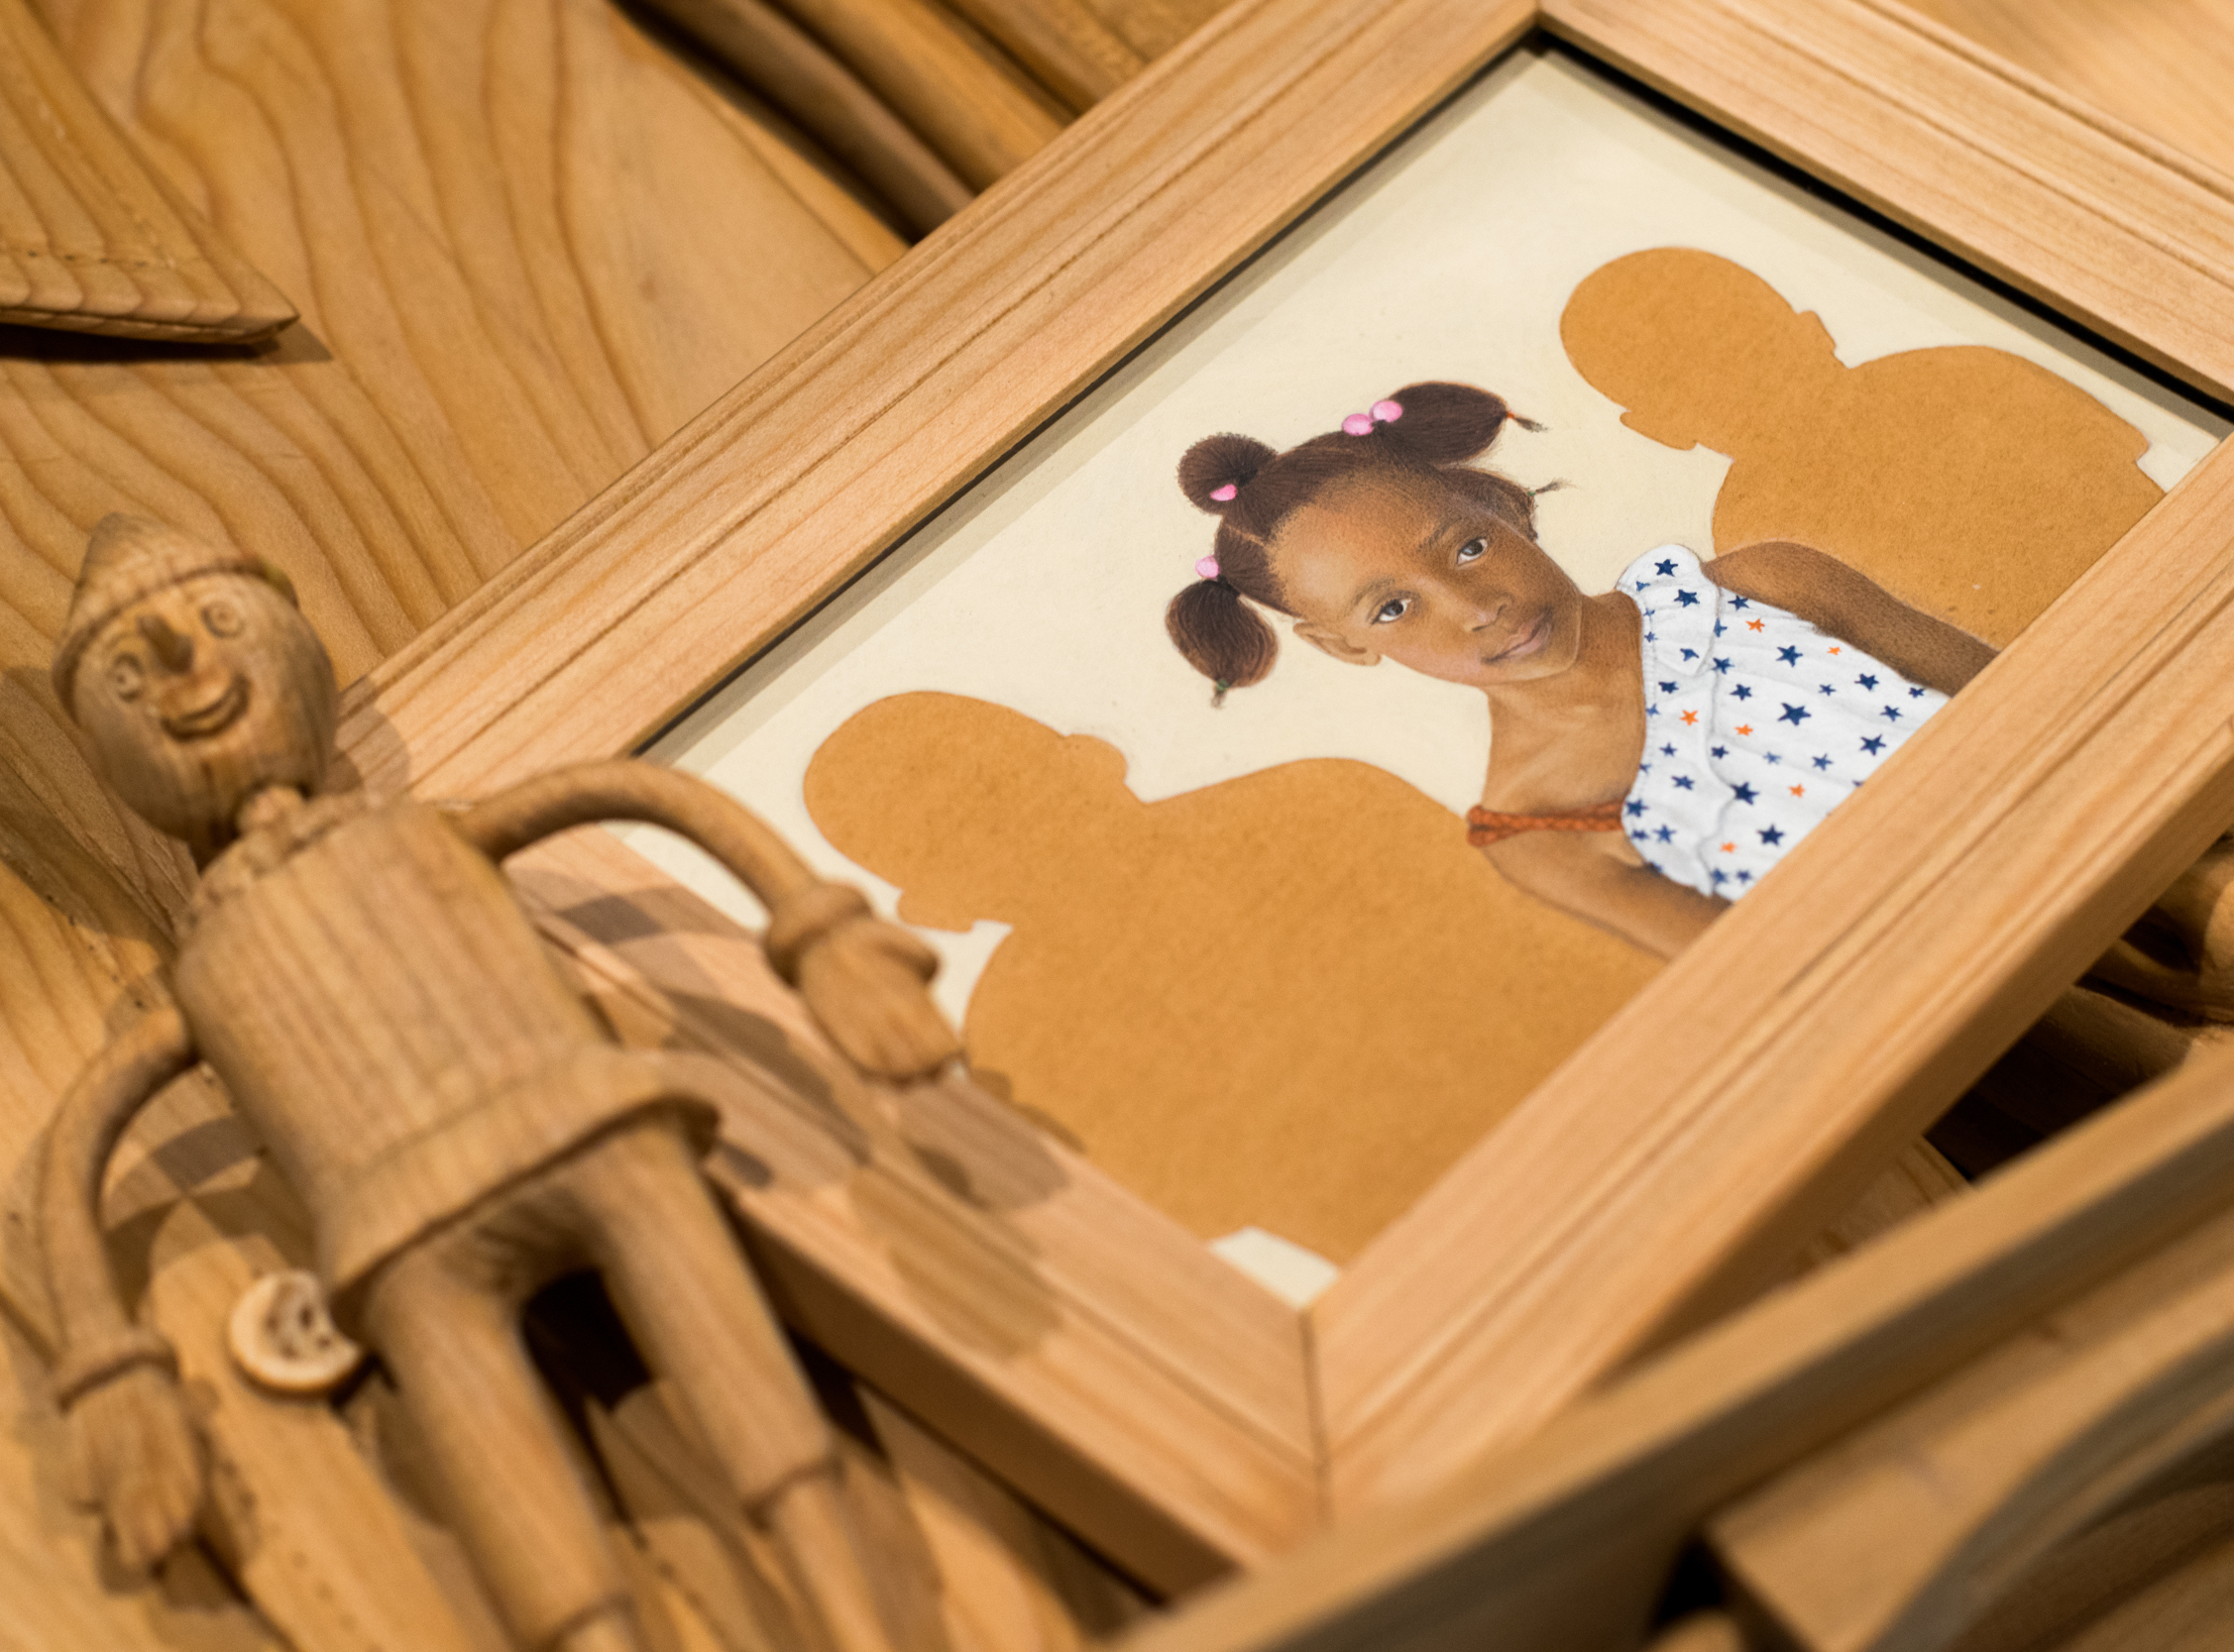 Title: Searching for Home (detail) Medium: Pine wood, carved; red wood stain.  Dimensions: Objects: dimensions vary, installation: 19 x 72 x 36 inches year: 2016-17 Photo credits: Adeel Ahmed  Portrait: Leila, Age 5 1/2, Zambia Medium: Gouache and pigments on handmade wasli paper Dimensions: Painting, unframed: 5 x 7 inches